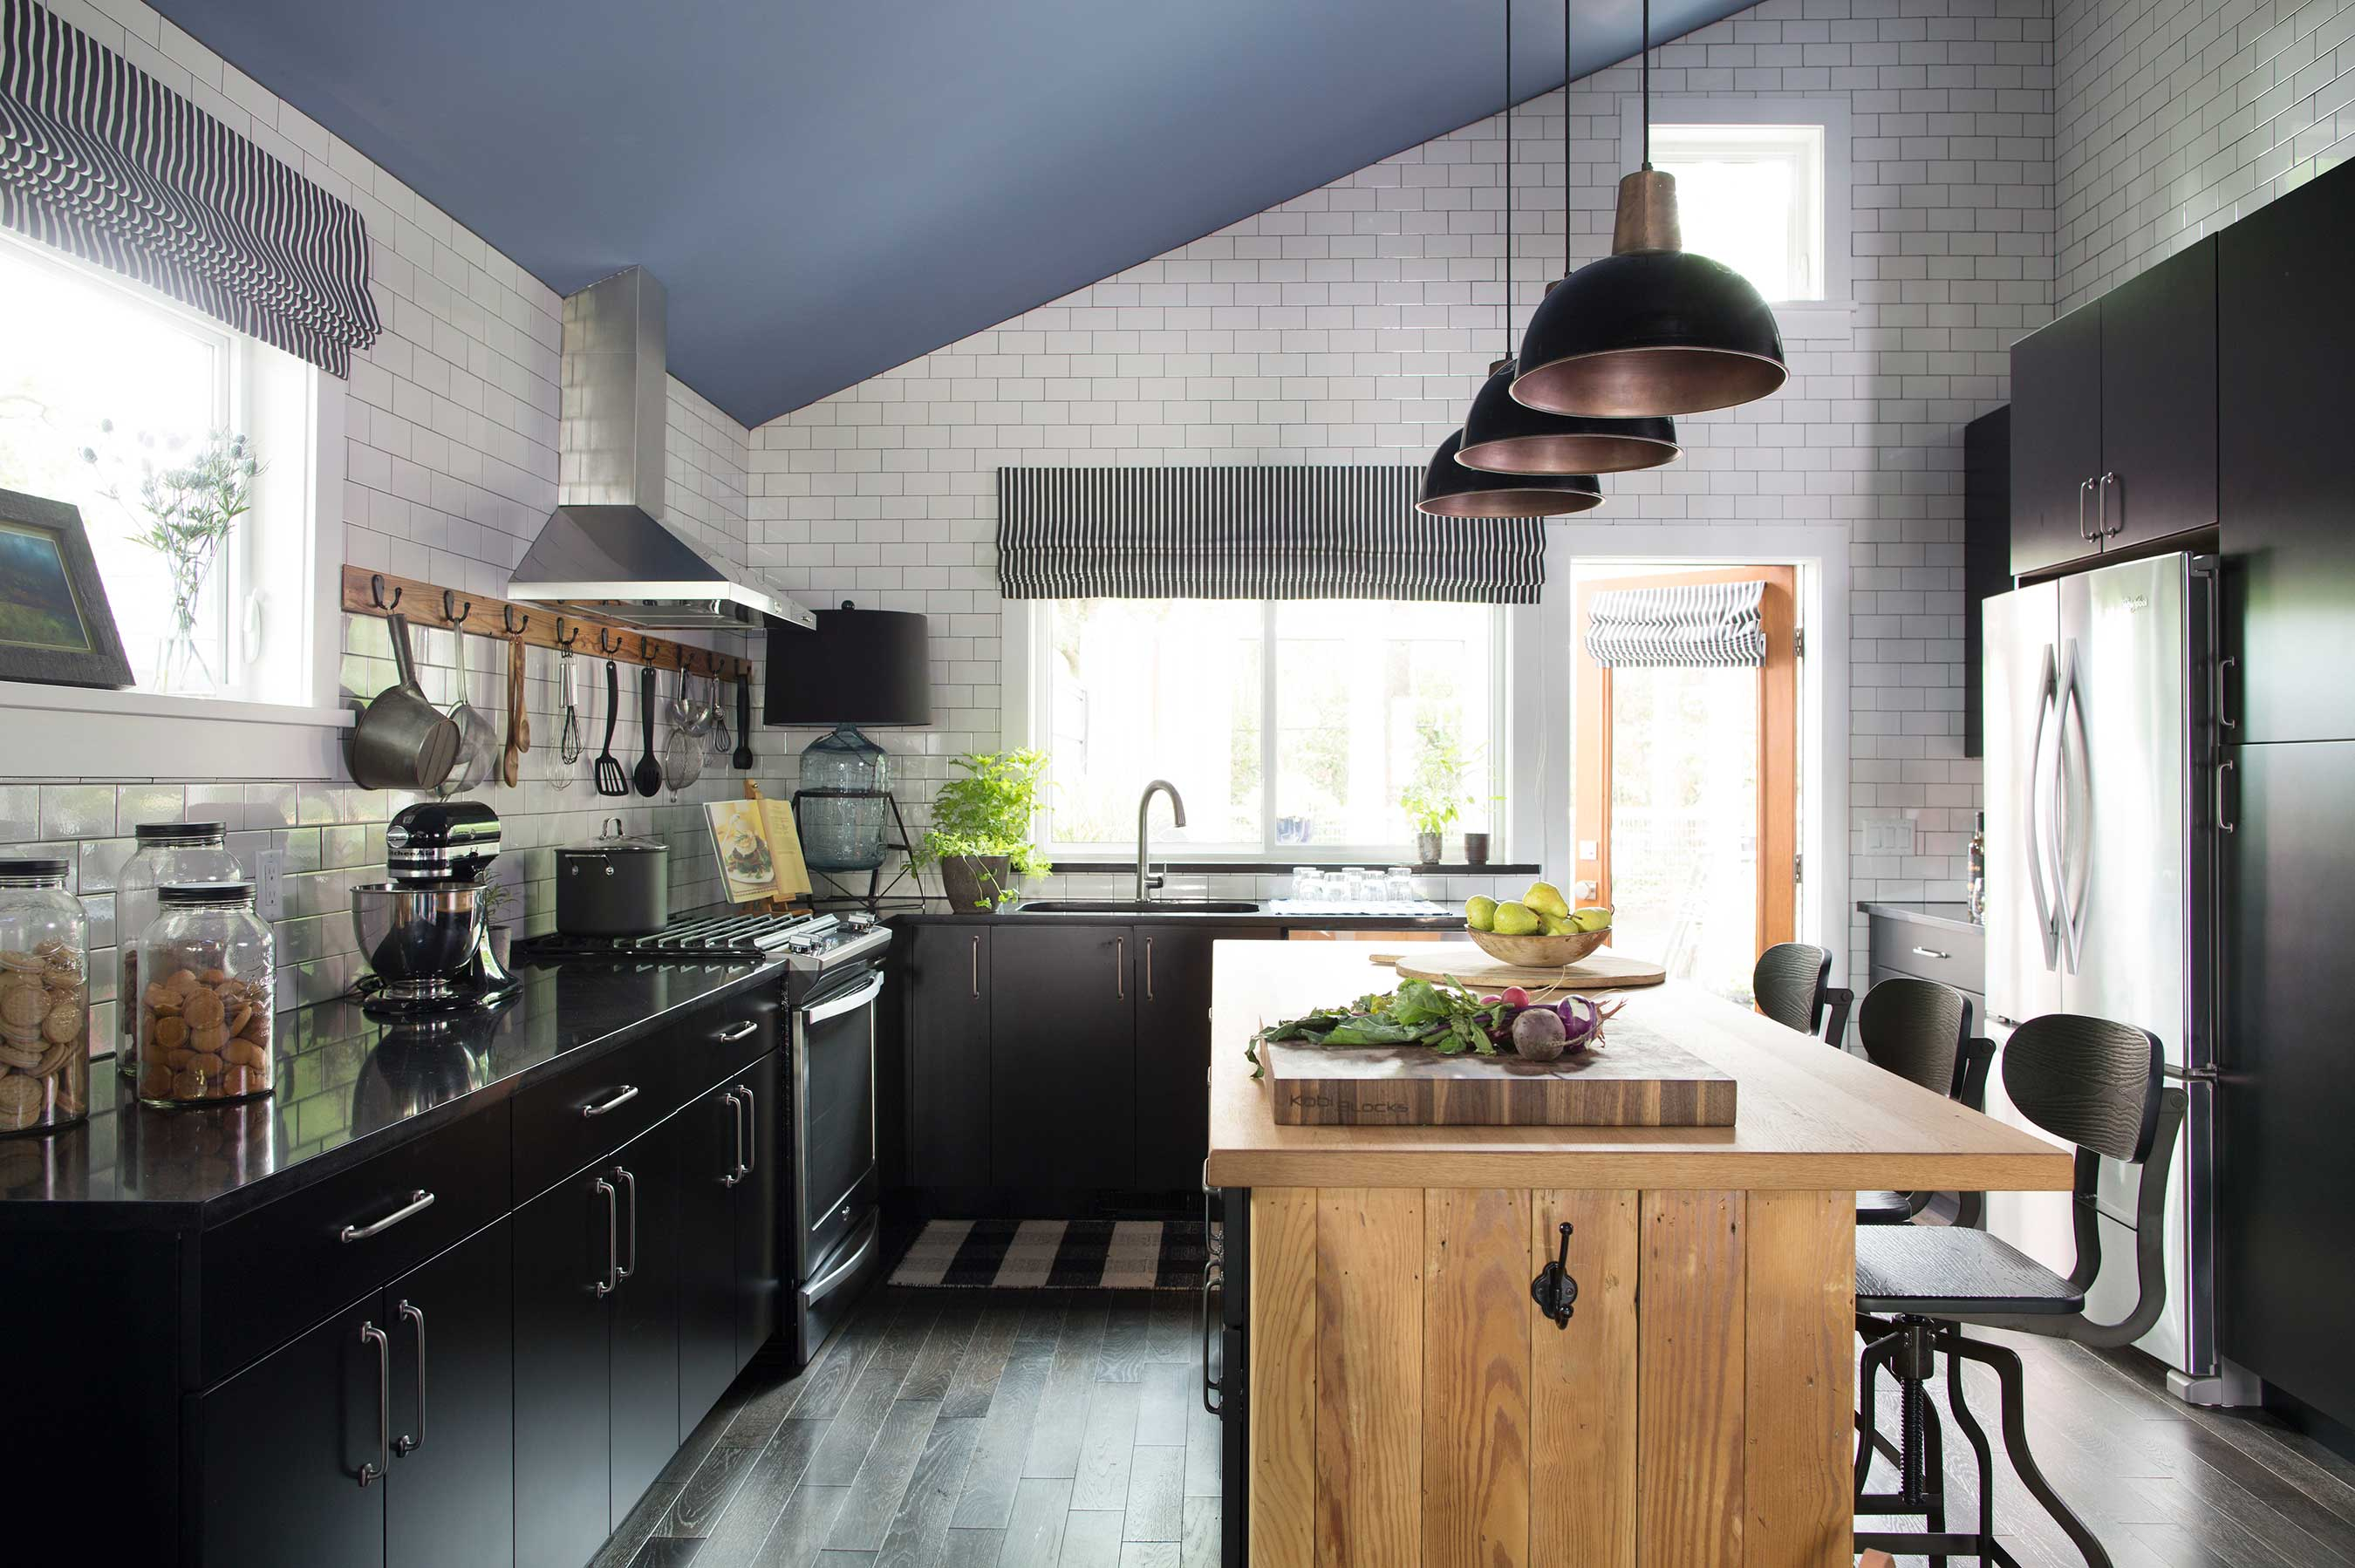 Hgtv urban oasis giveaway 2015 now open for entries for Hgtv kitchens